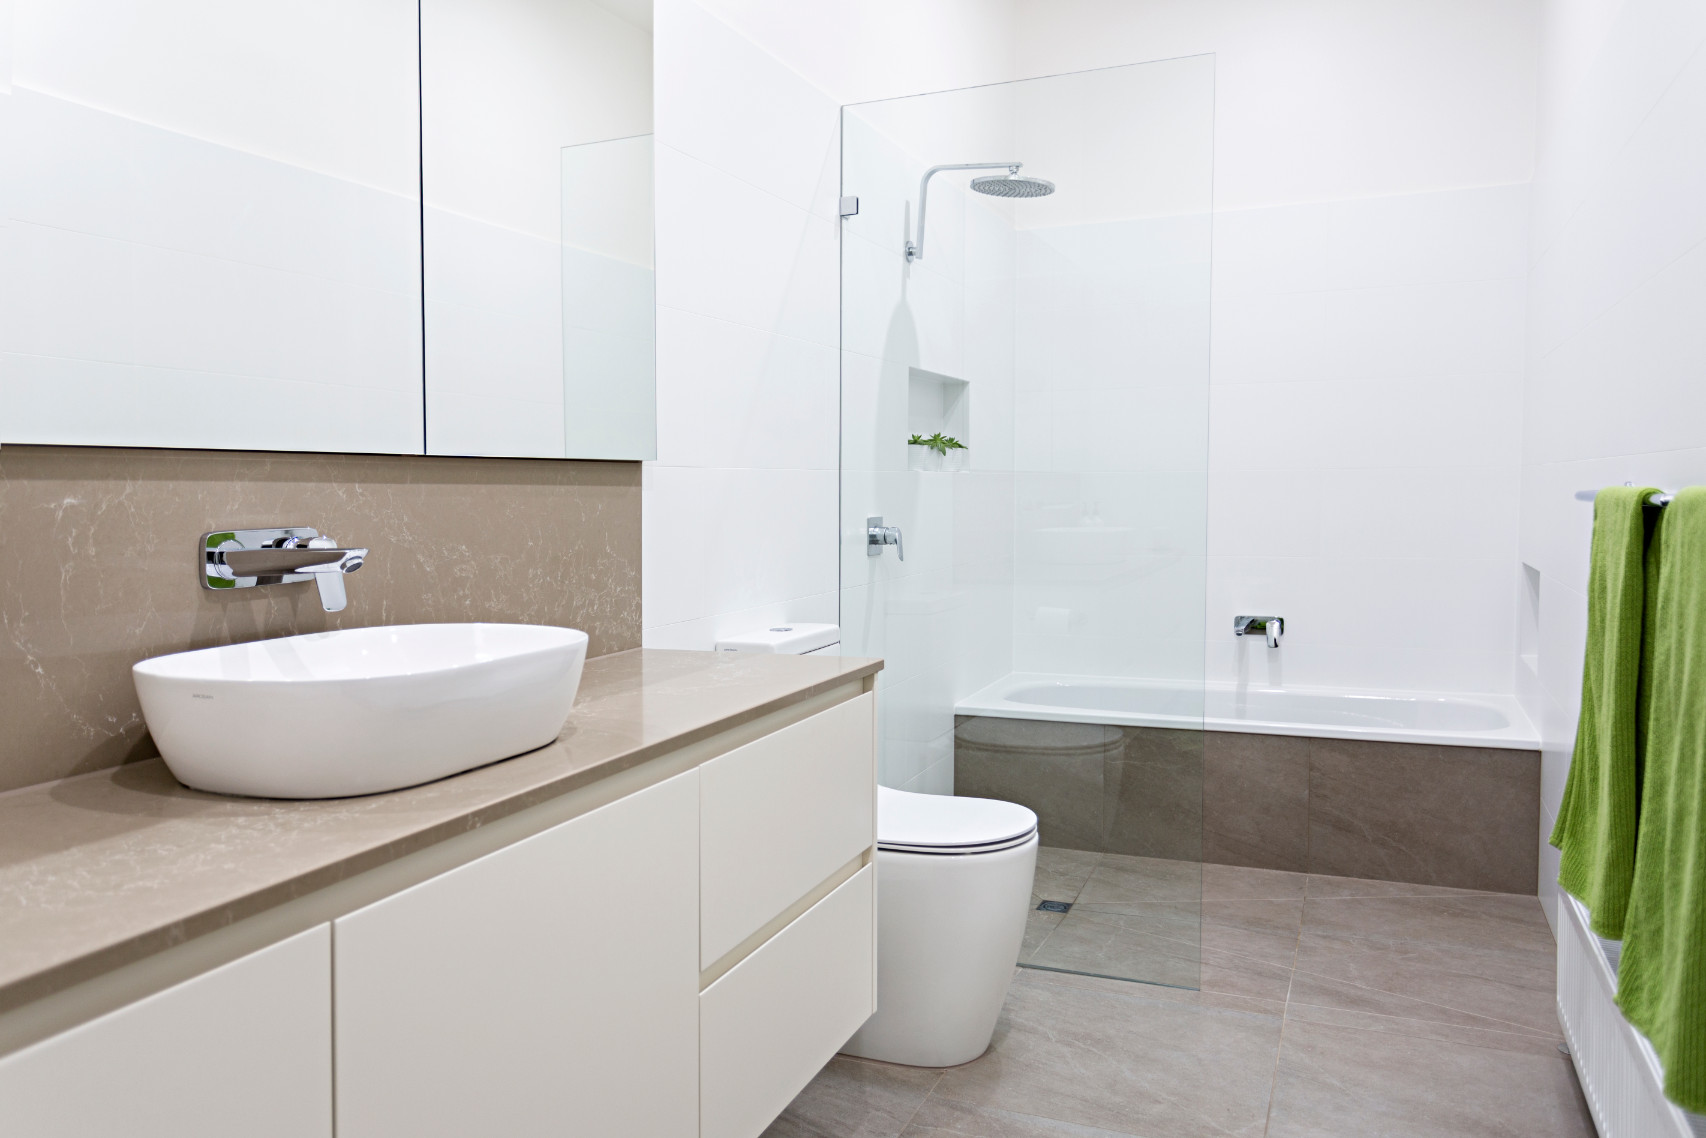 All City Bathrooms, Kitchens & Extensions - Builders in Malvern East